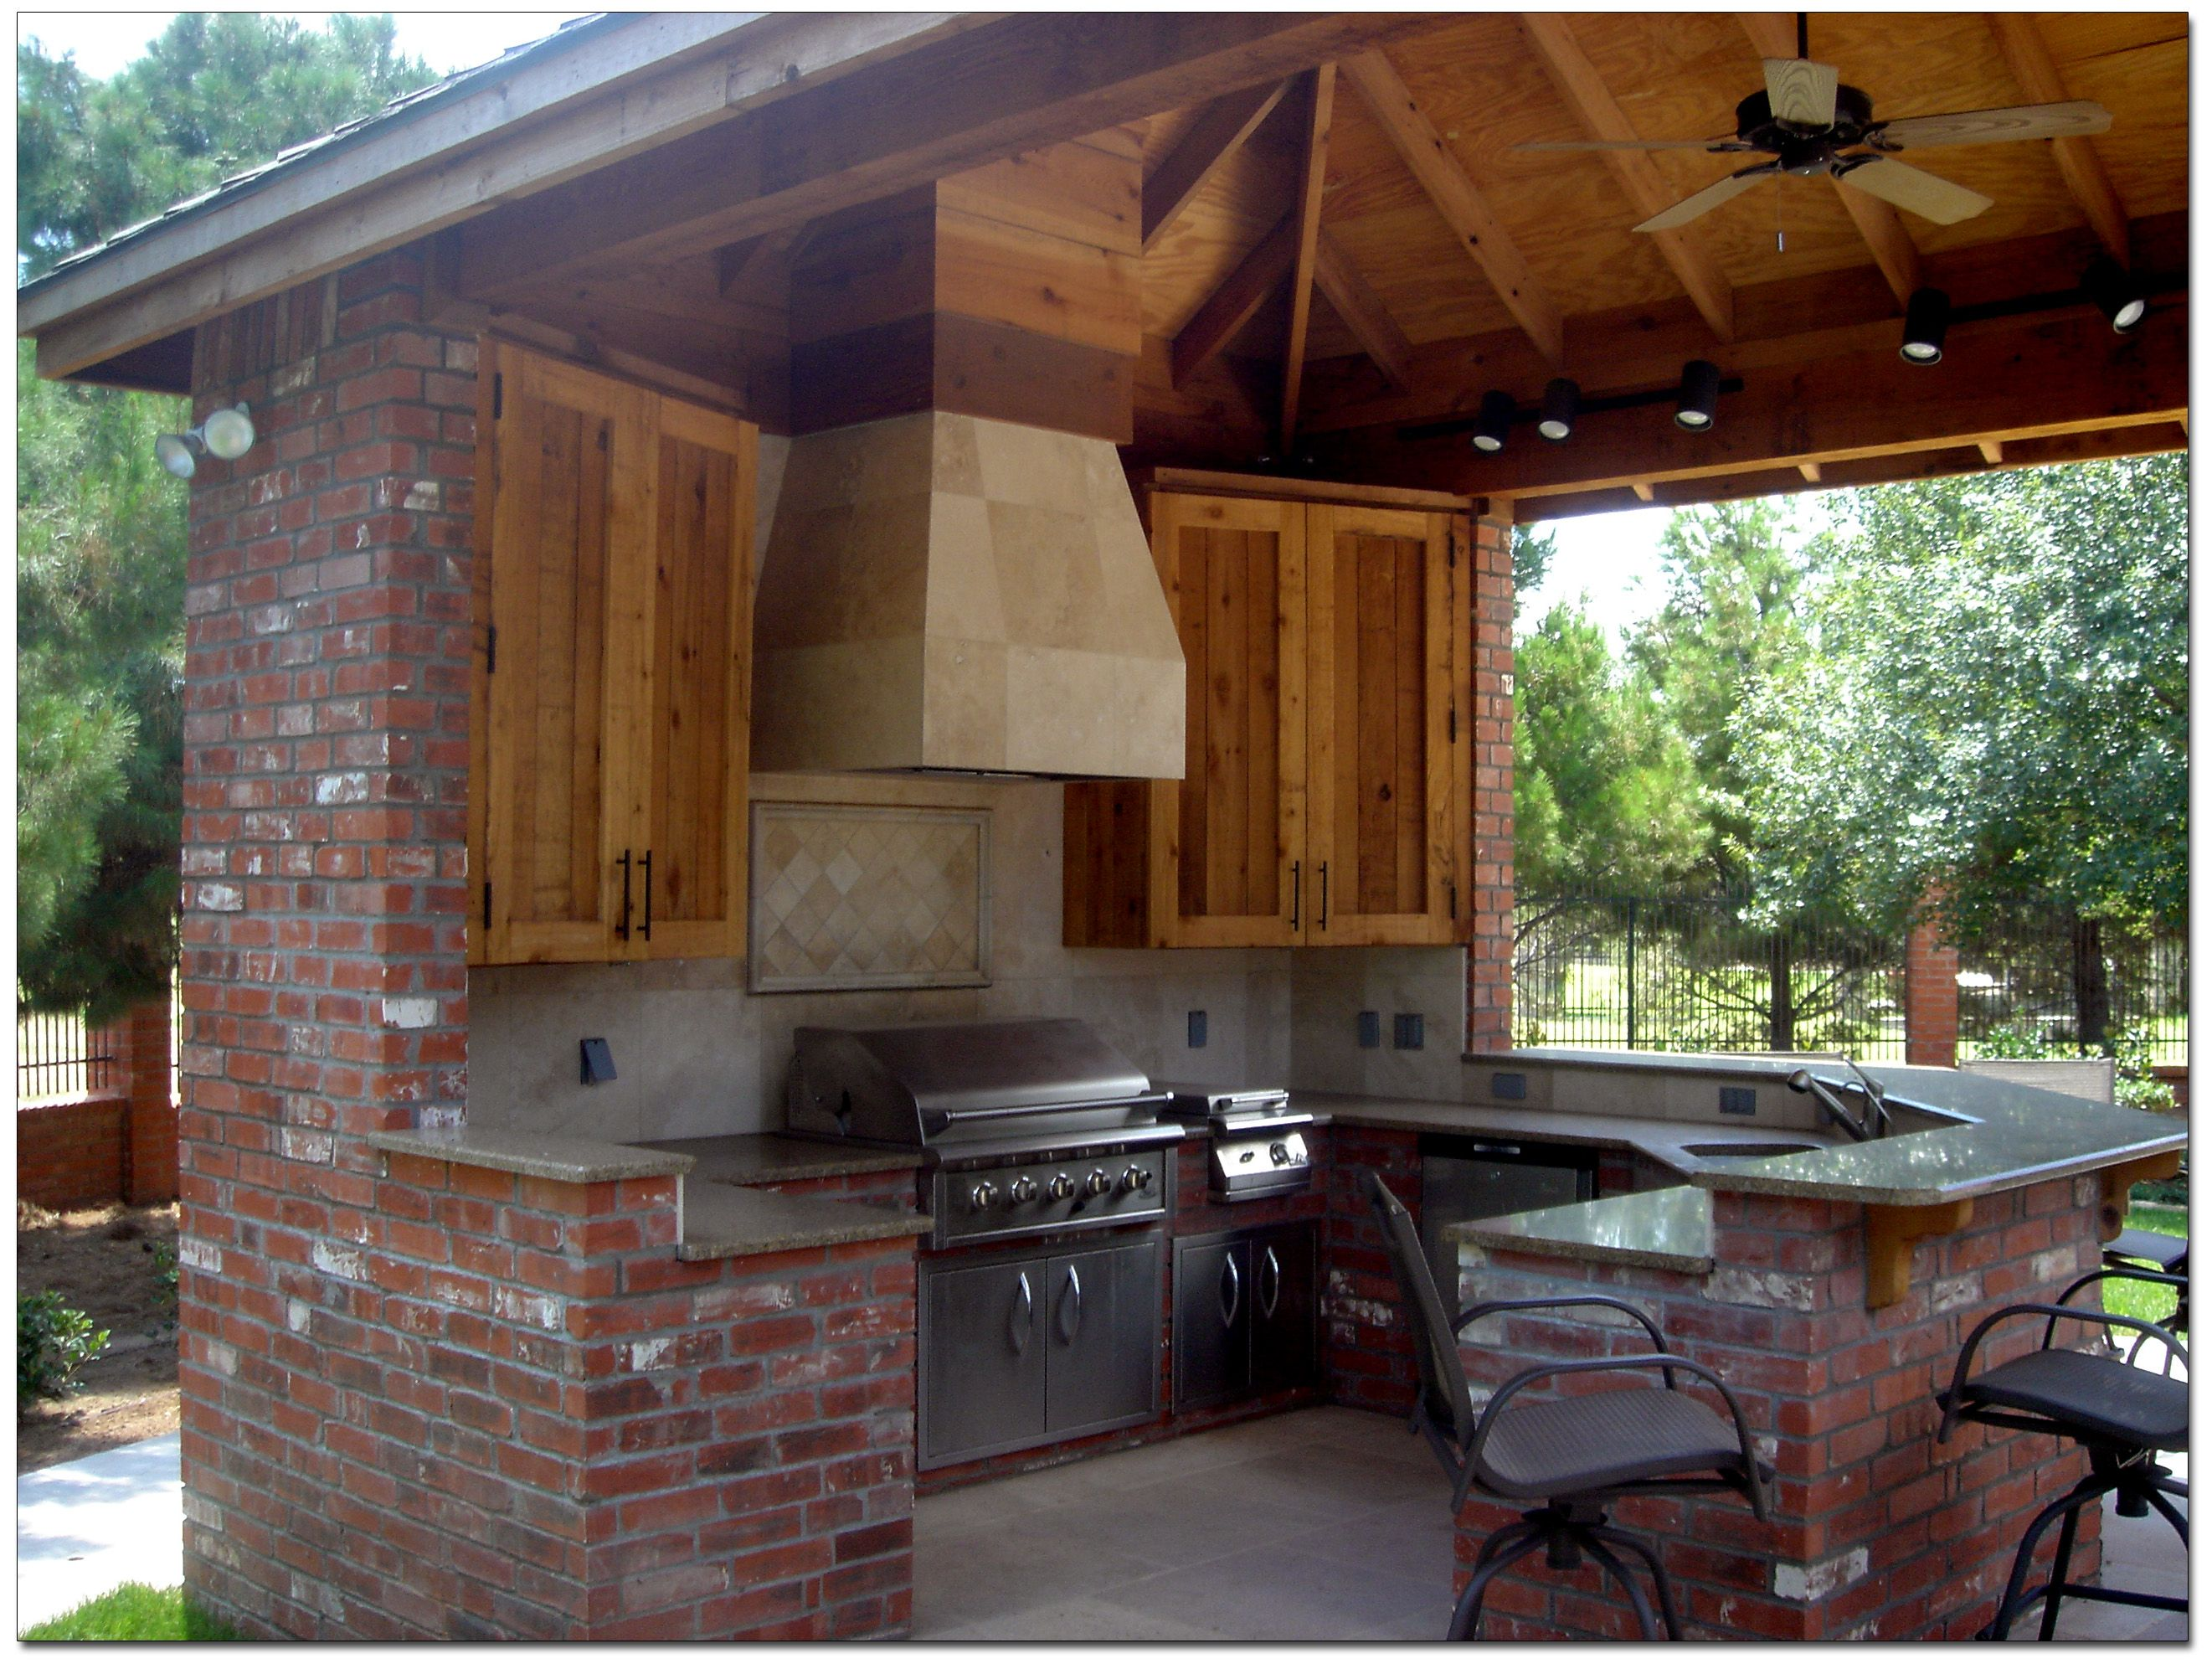 Outdoor Kitchens And Pool Designs Outdoor Kitchen: rustic outdoor kitchen designs